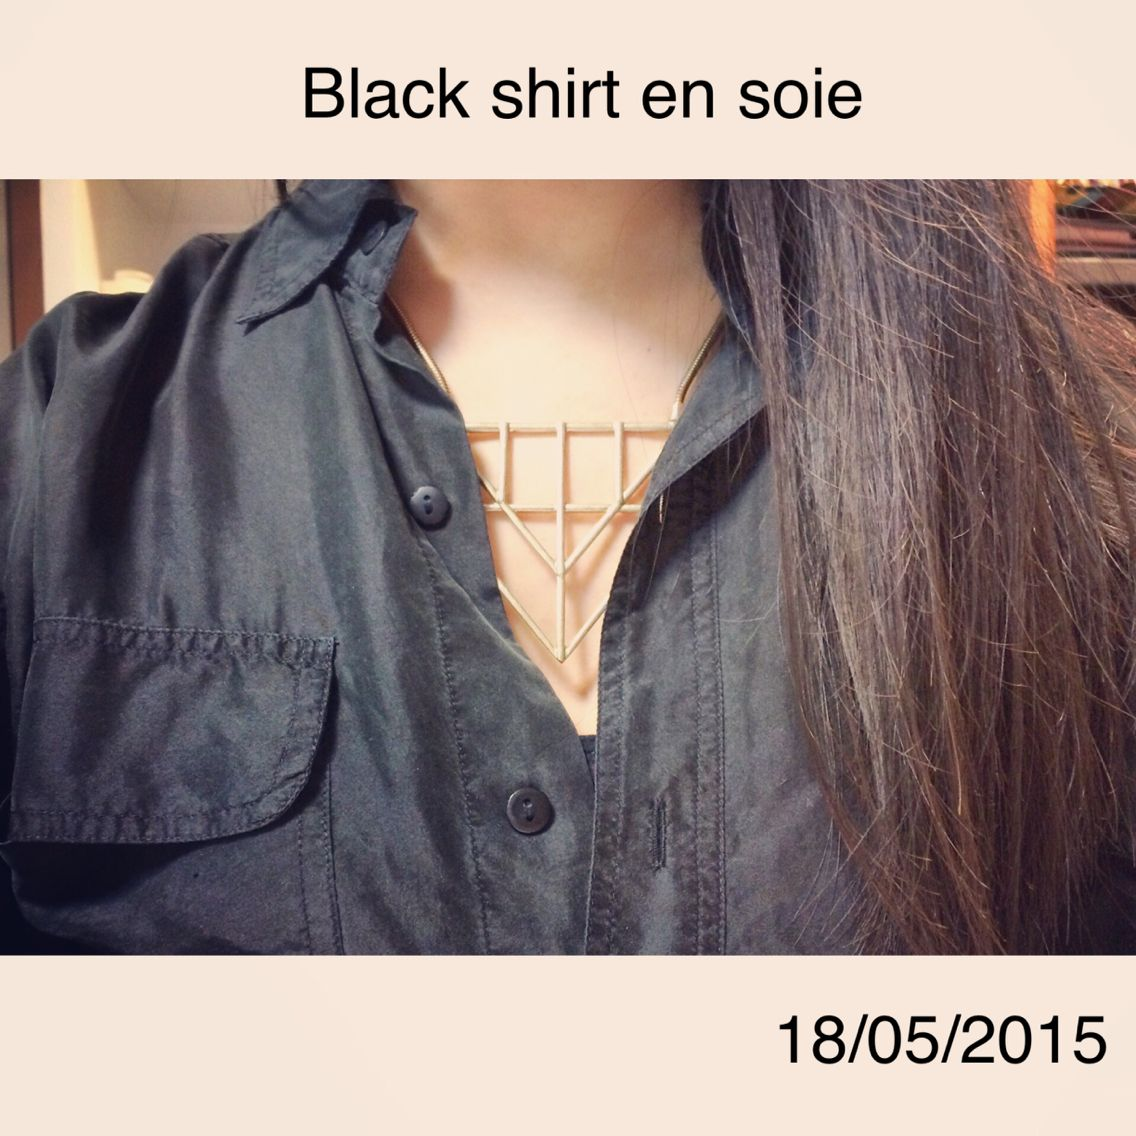 Black shirt en soie